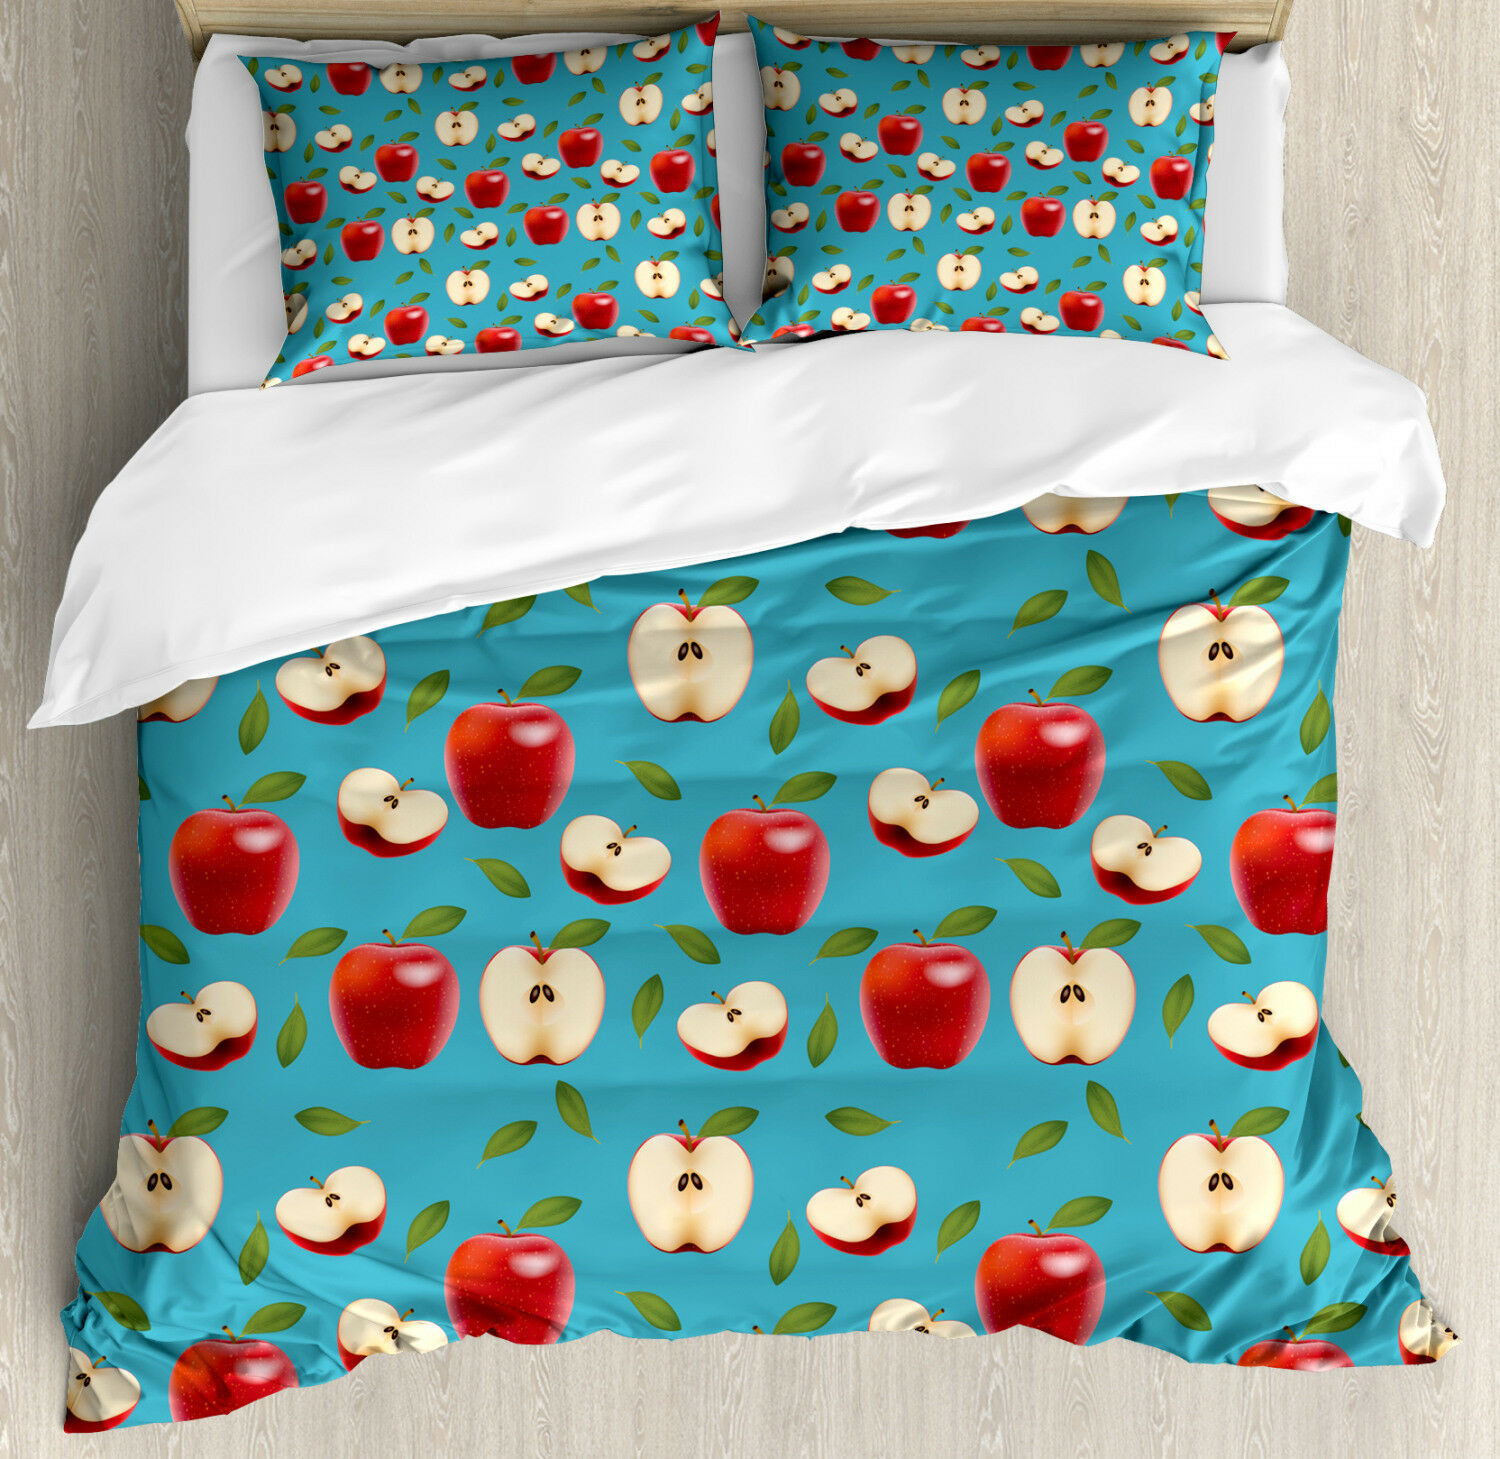 Apple Duvet Cover Set with Pillow Shams rosso Delicious Healty Food Print